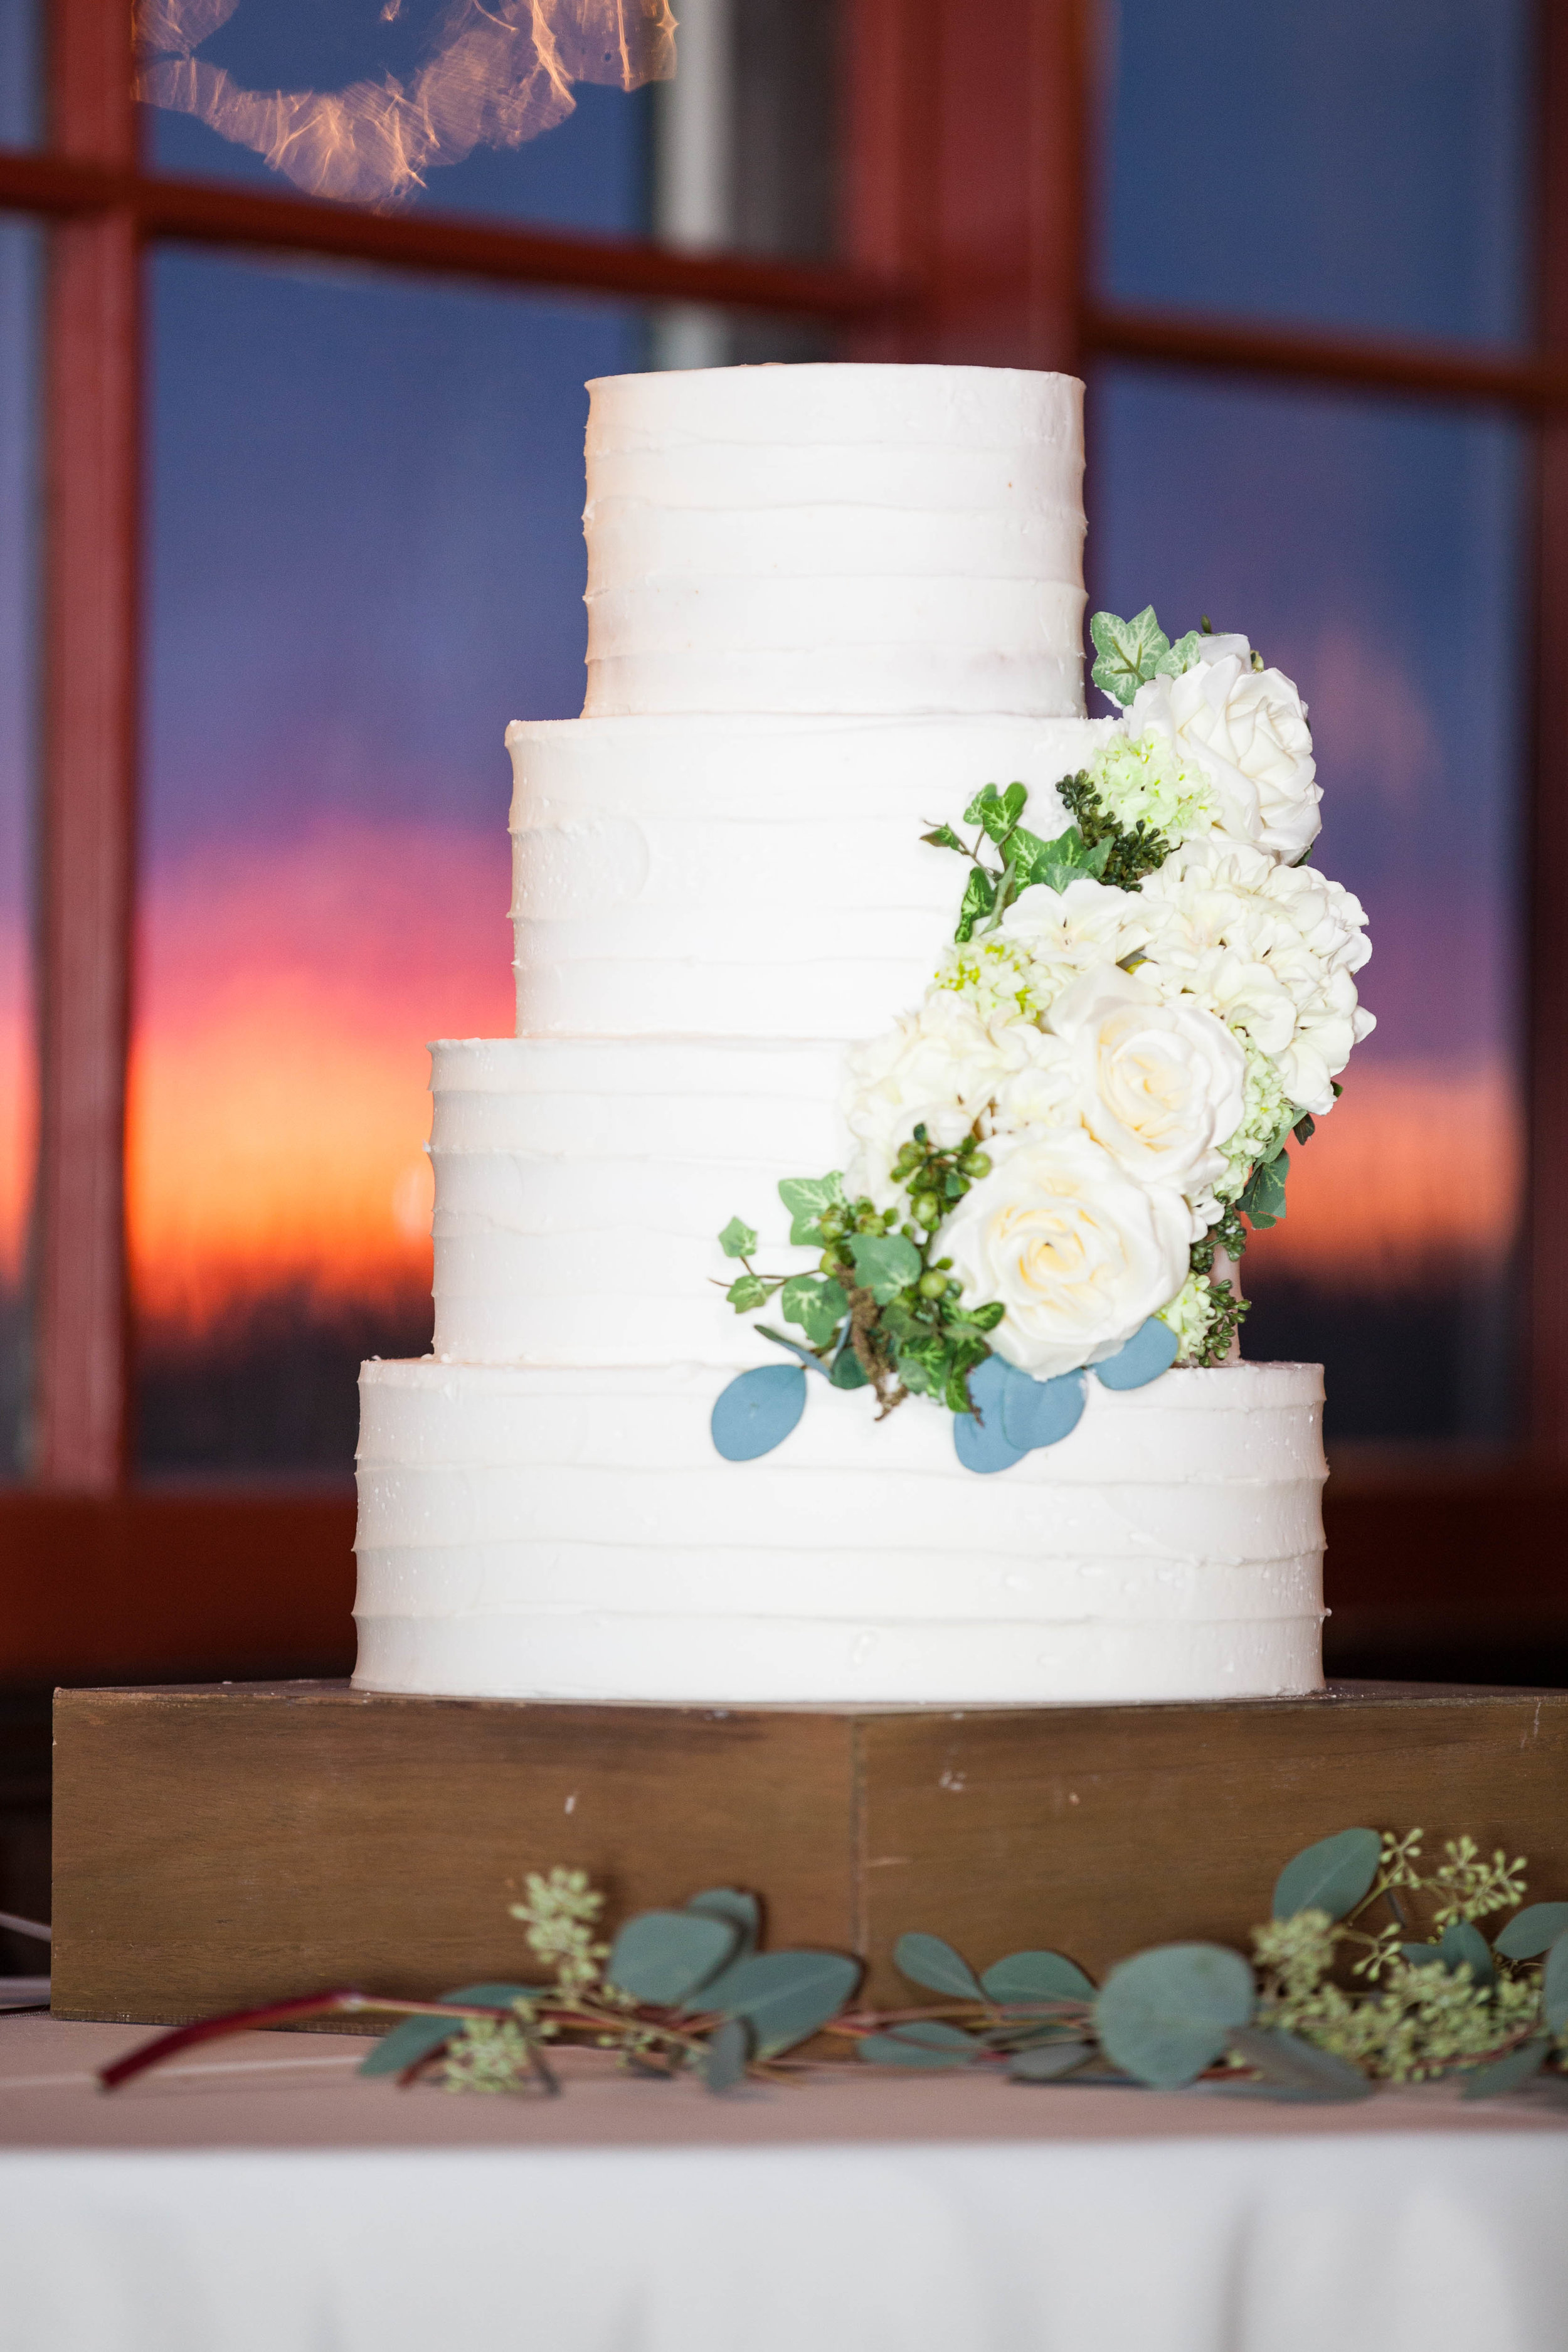 wedding budget tips wedding cake.jpg